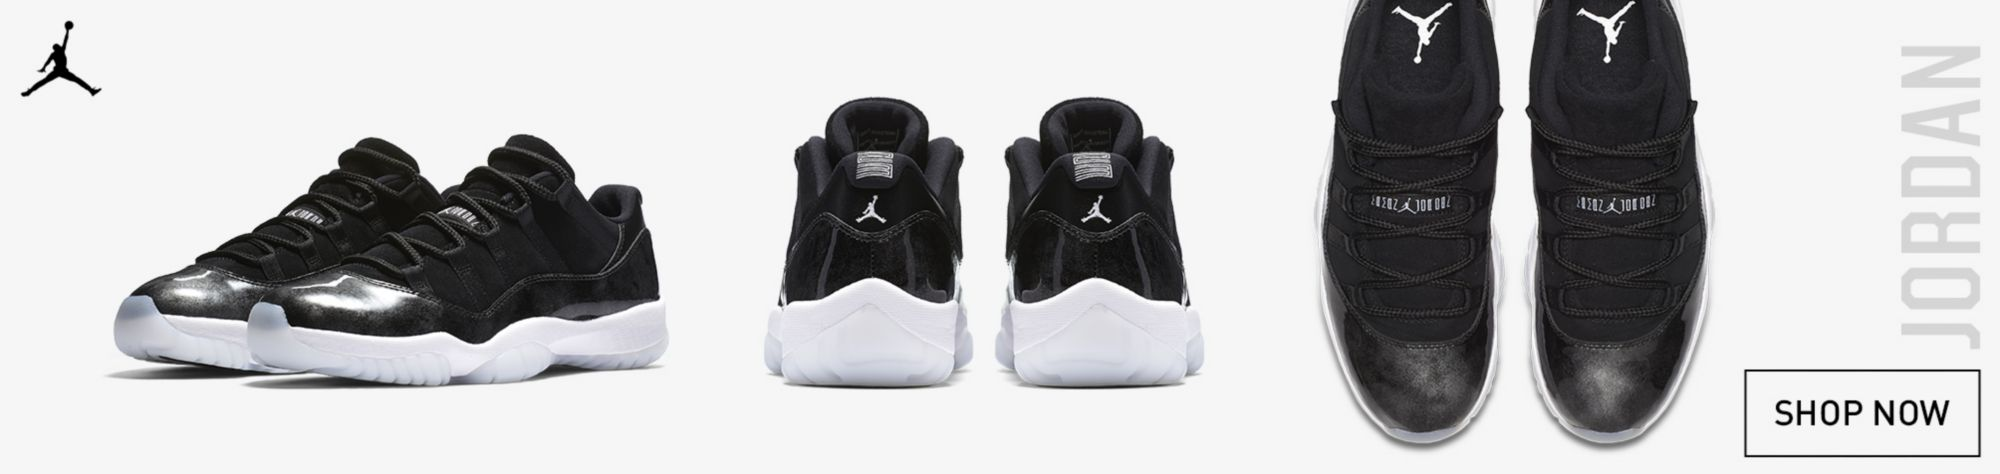 Shop Air Jordan Retro XI Low